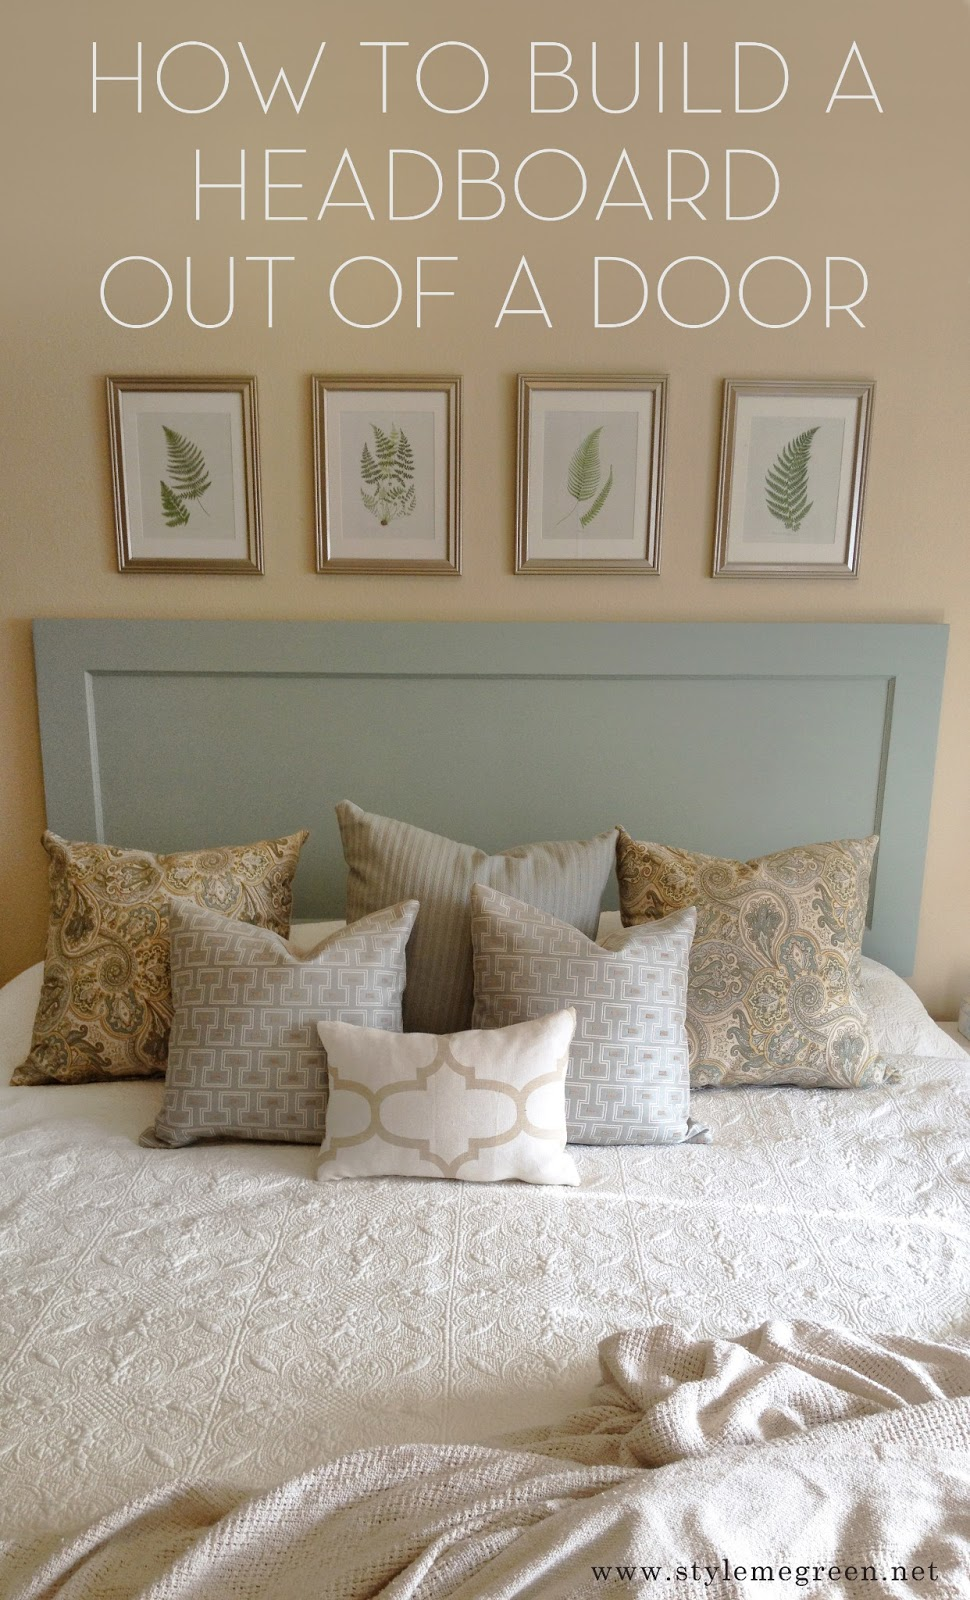 Diy Headboards 50 Outstanding Diy Headboard Ideas To Spice Up Your Bedroom